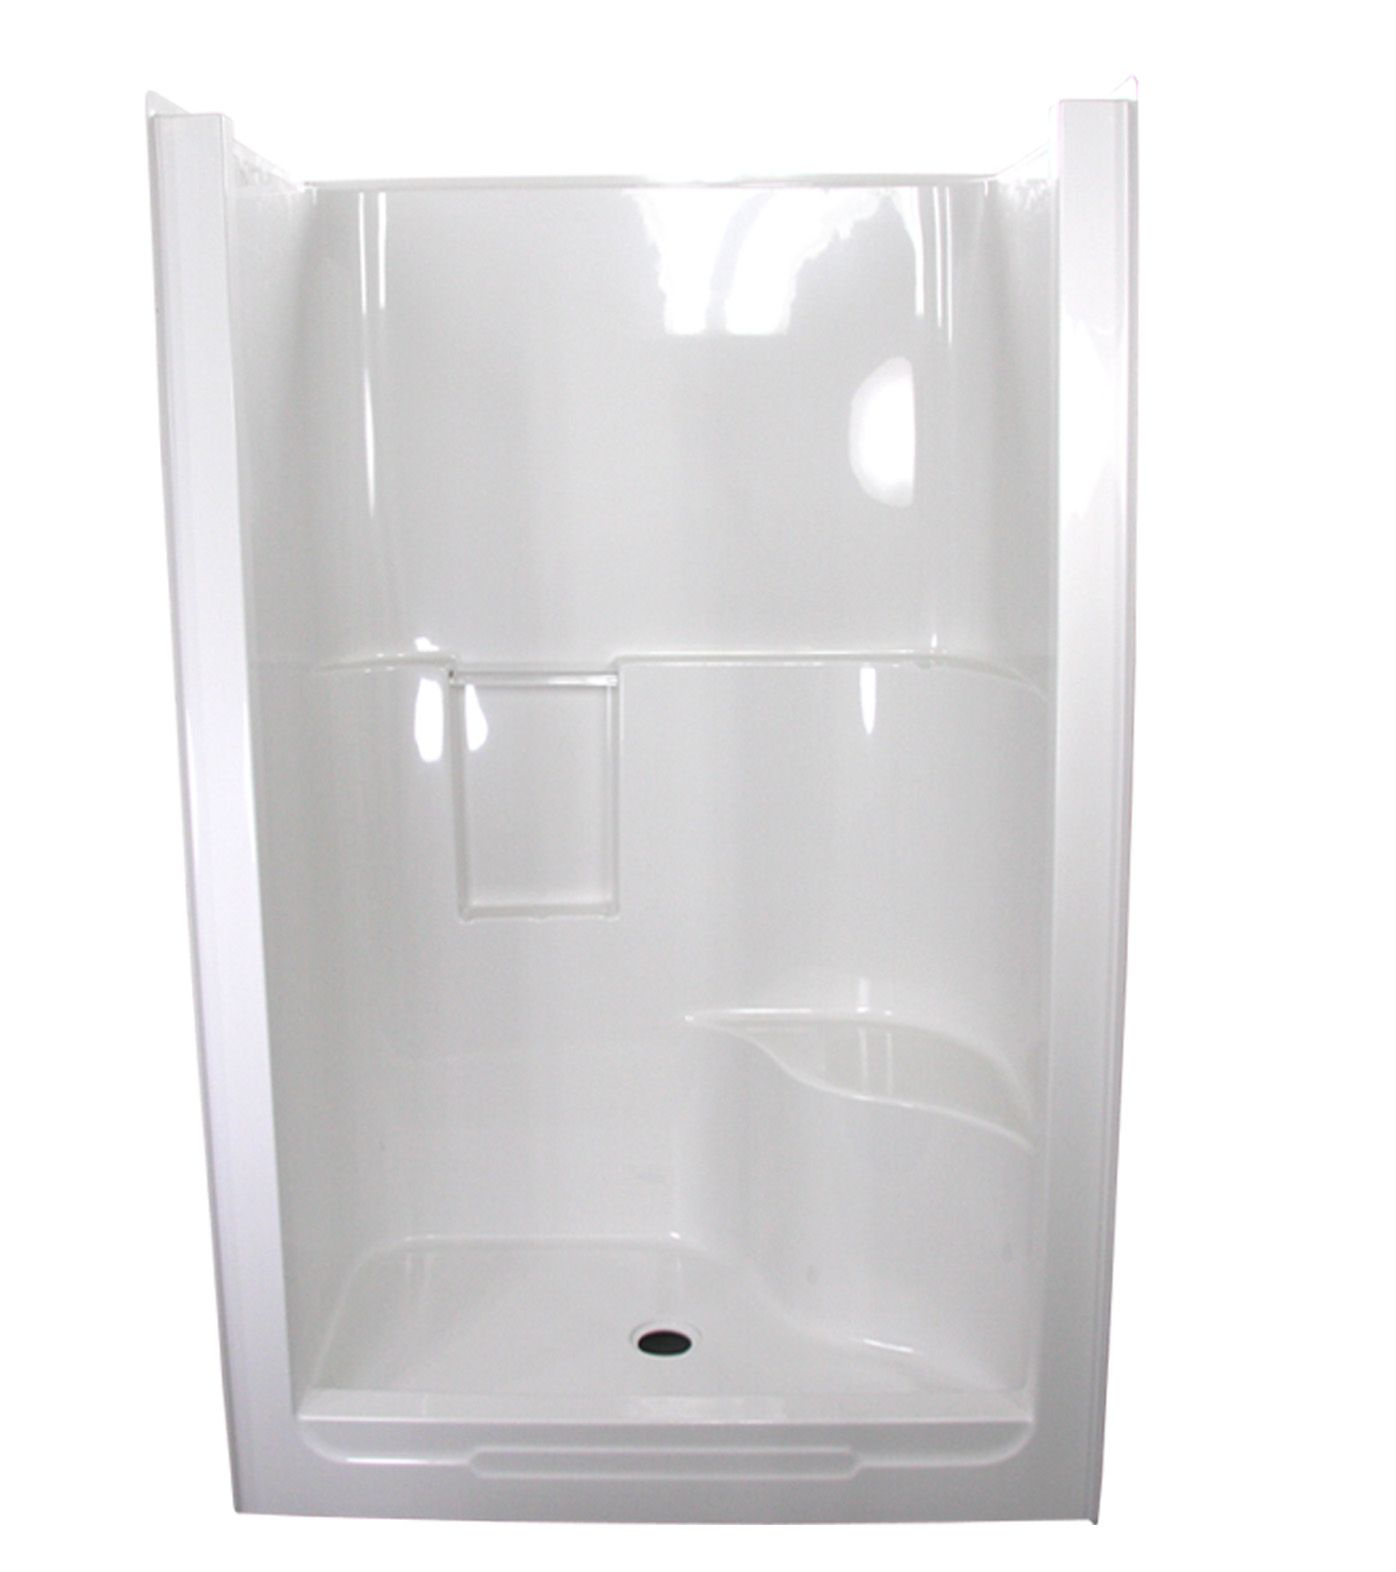 one piece fibergl shower stalls - Bing Images ... on home depot handicap shower, mobile homes with garages, modular home disabled shower, mobile home shower pan, mobile home shower tile, mobile home shower stalls, industrial handicap shower, handicap shower rails for outside the shower,